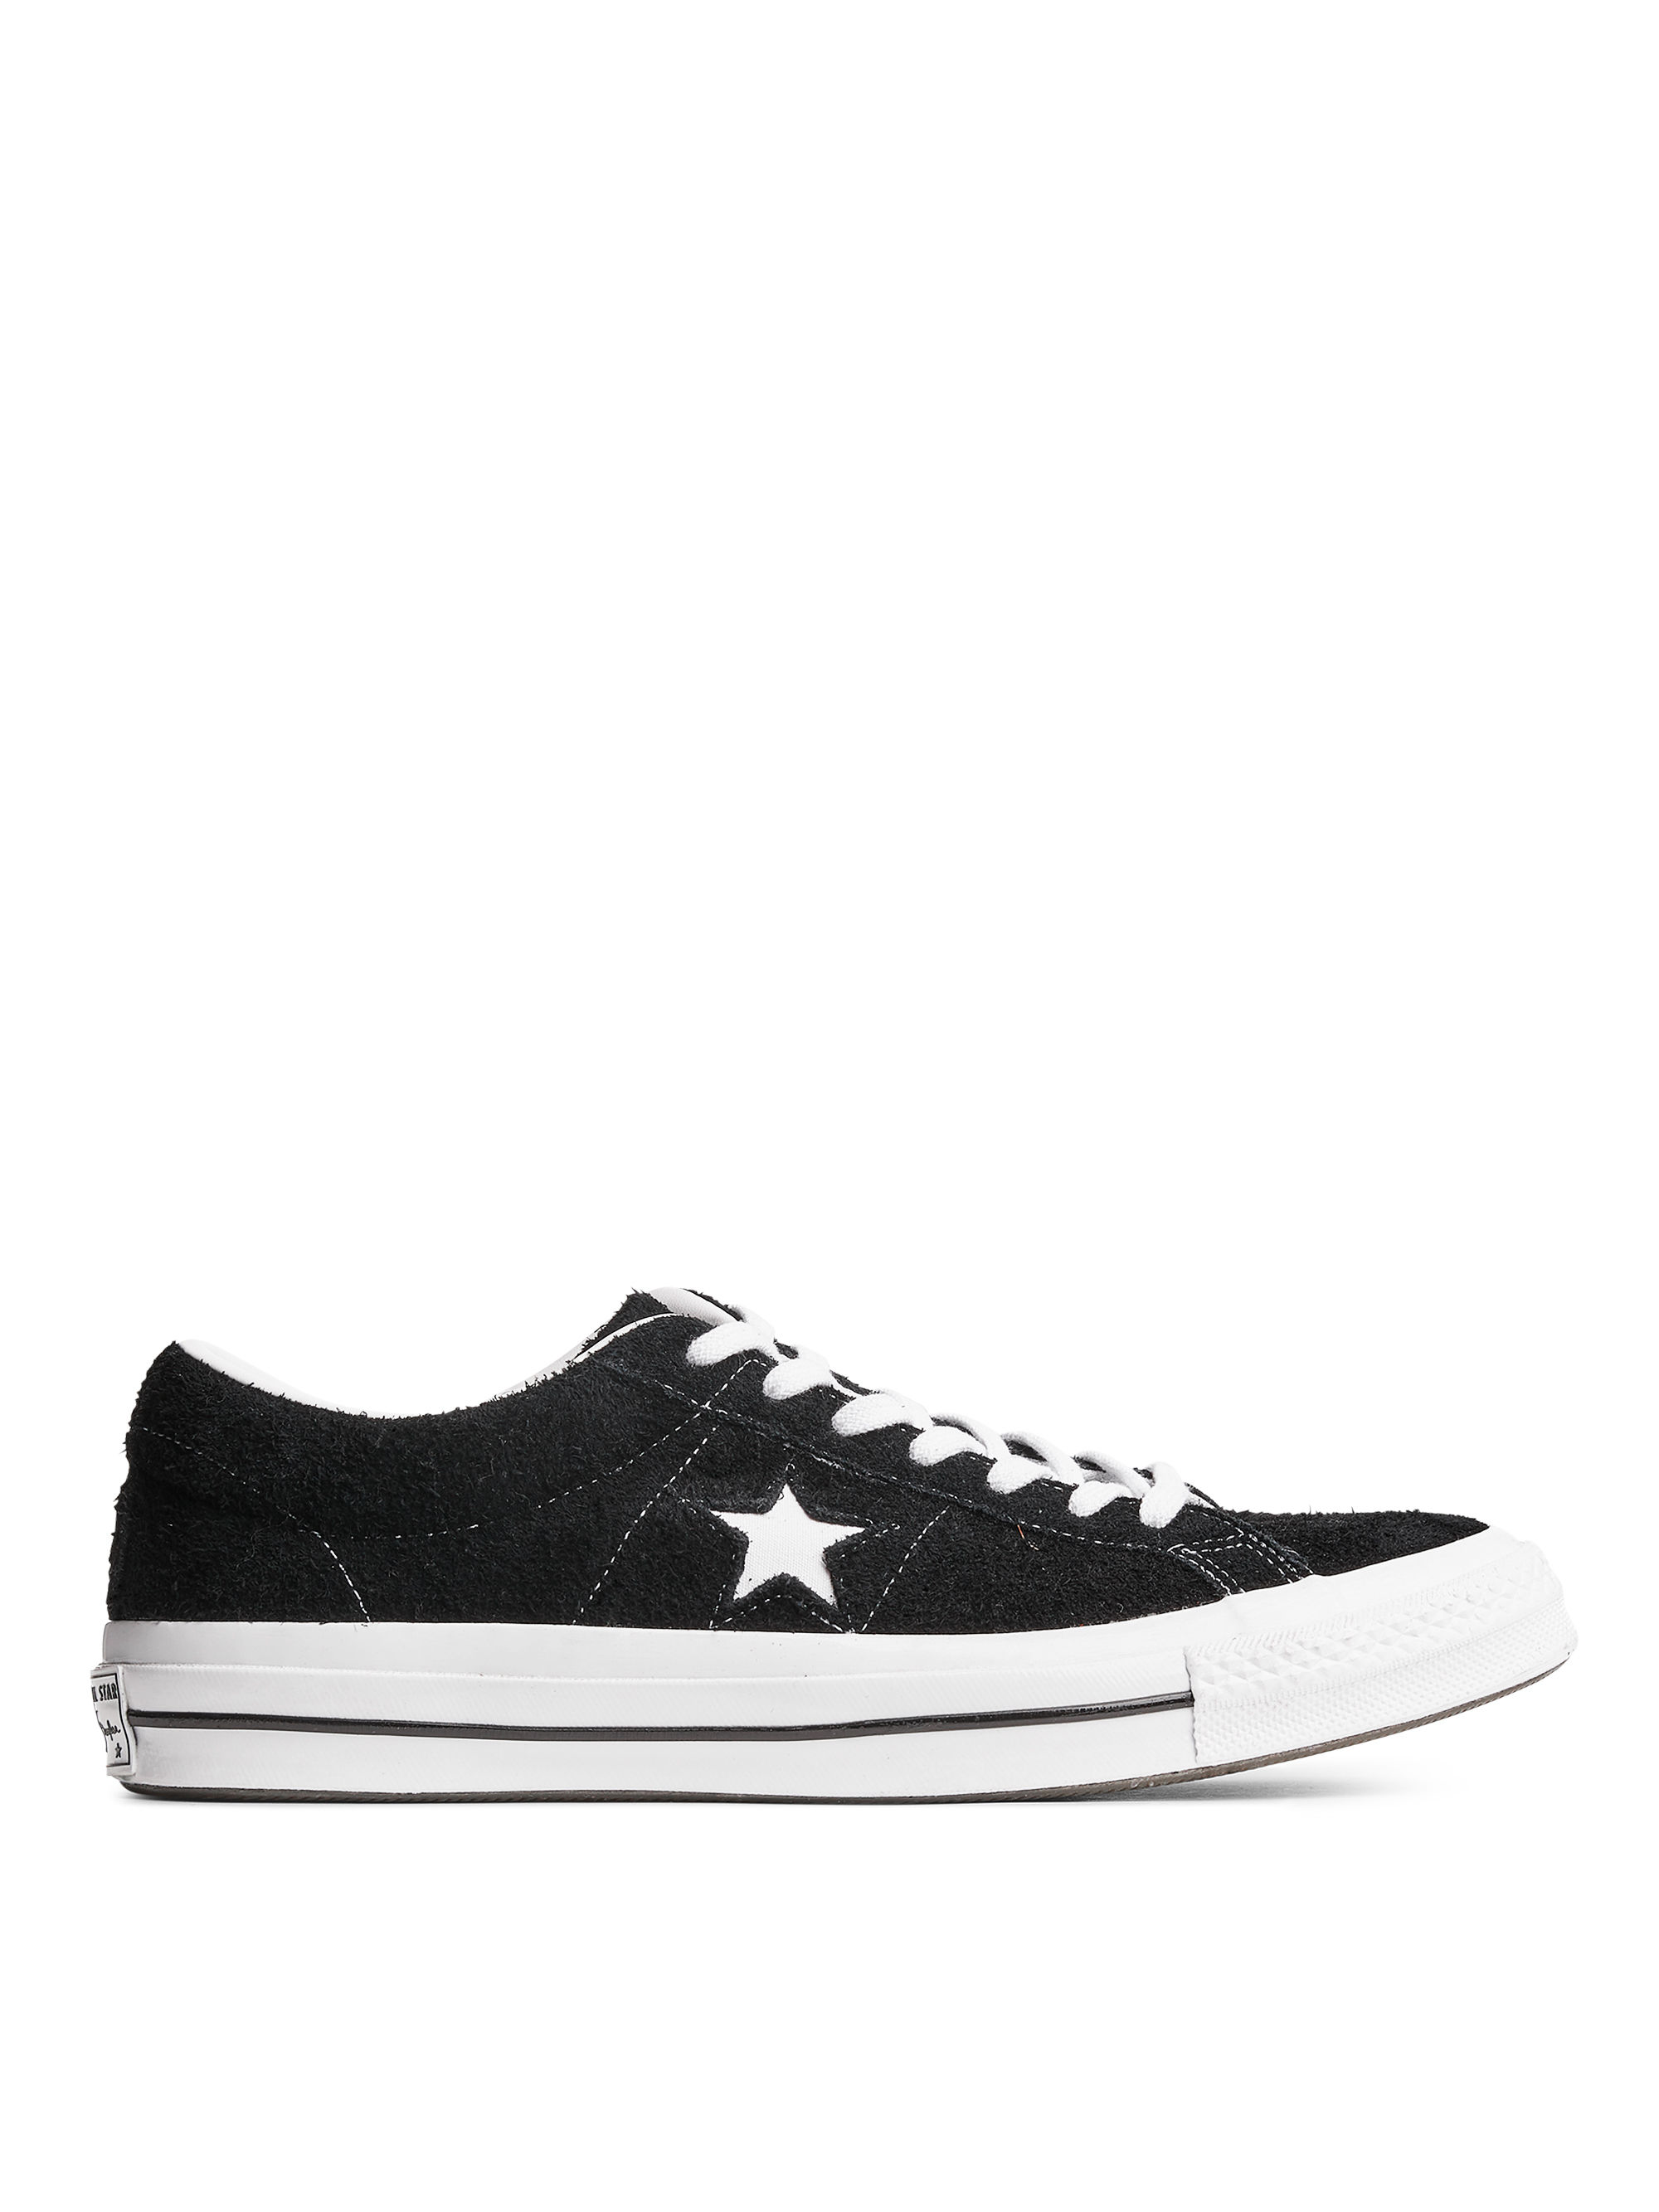 Fabric Swatch image of Arket converse one star low in black